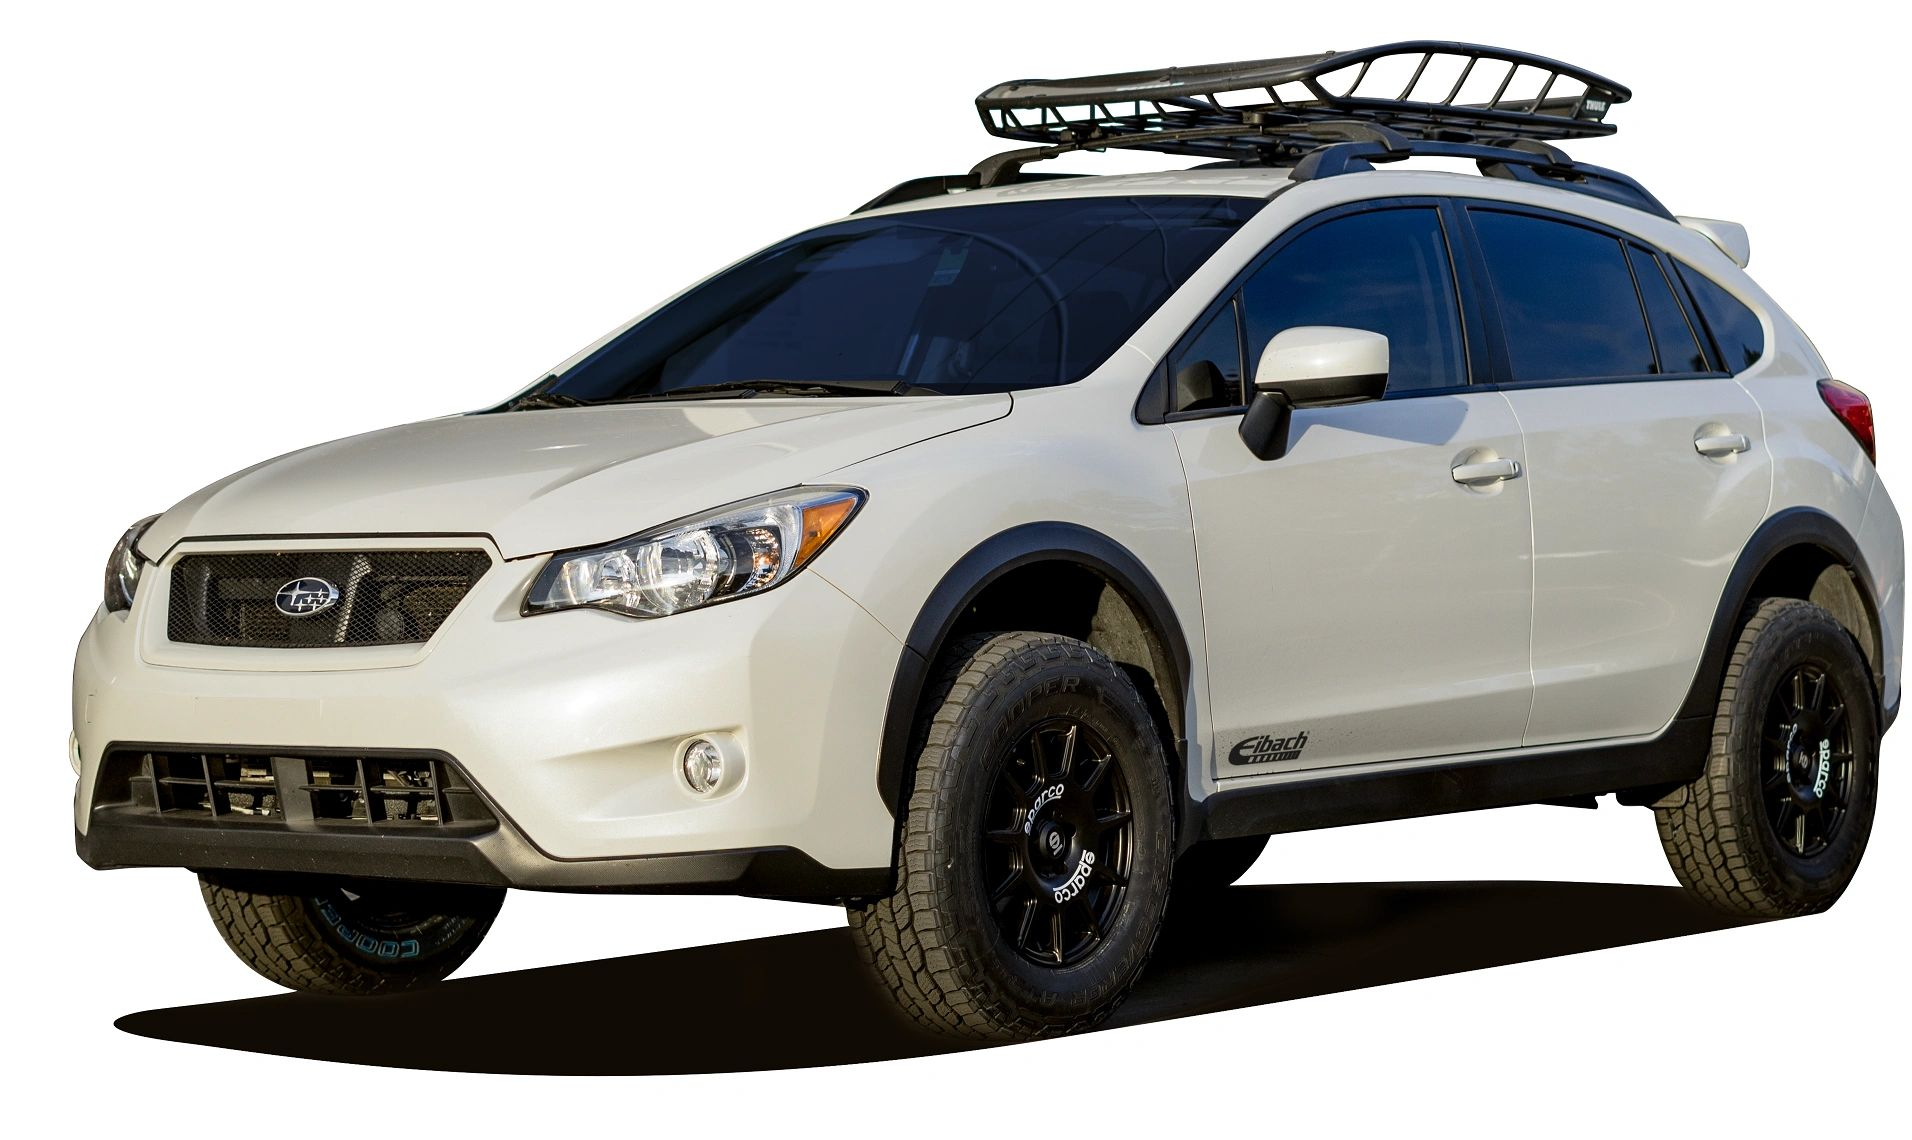 Eibach Pro-Lift Kit: 13-17 Subaru Crosstrek